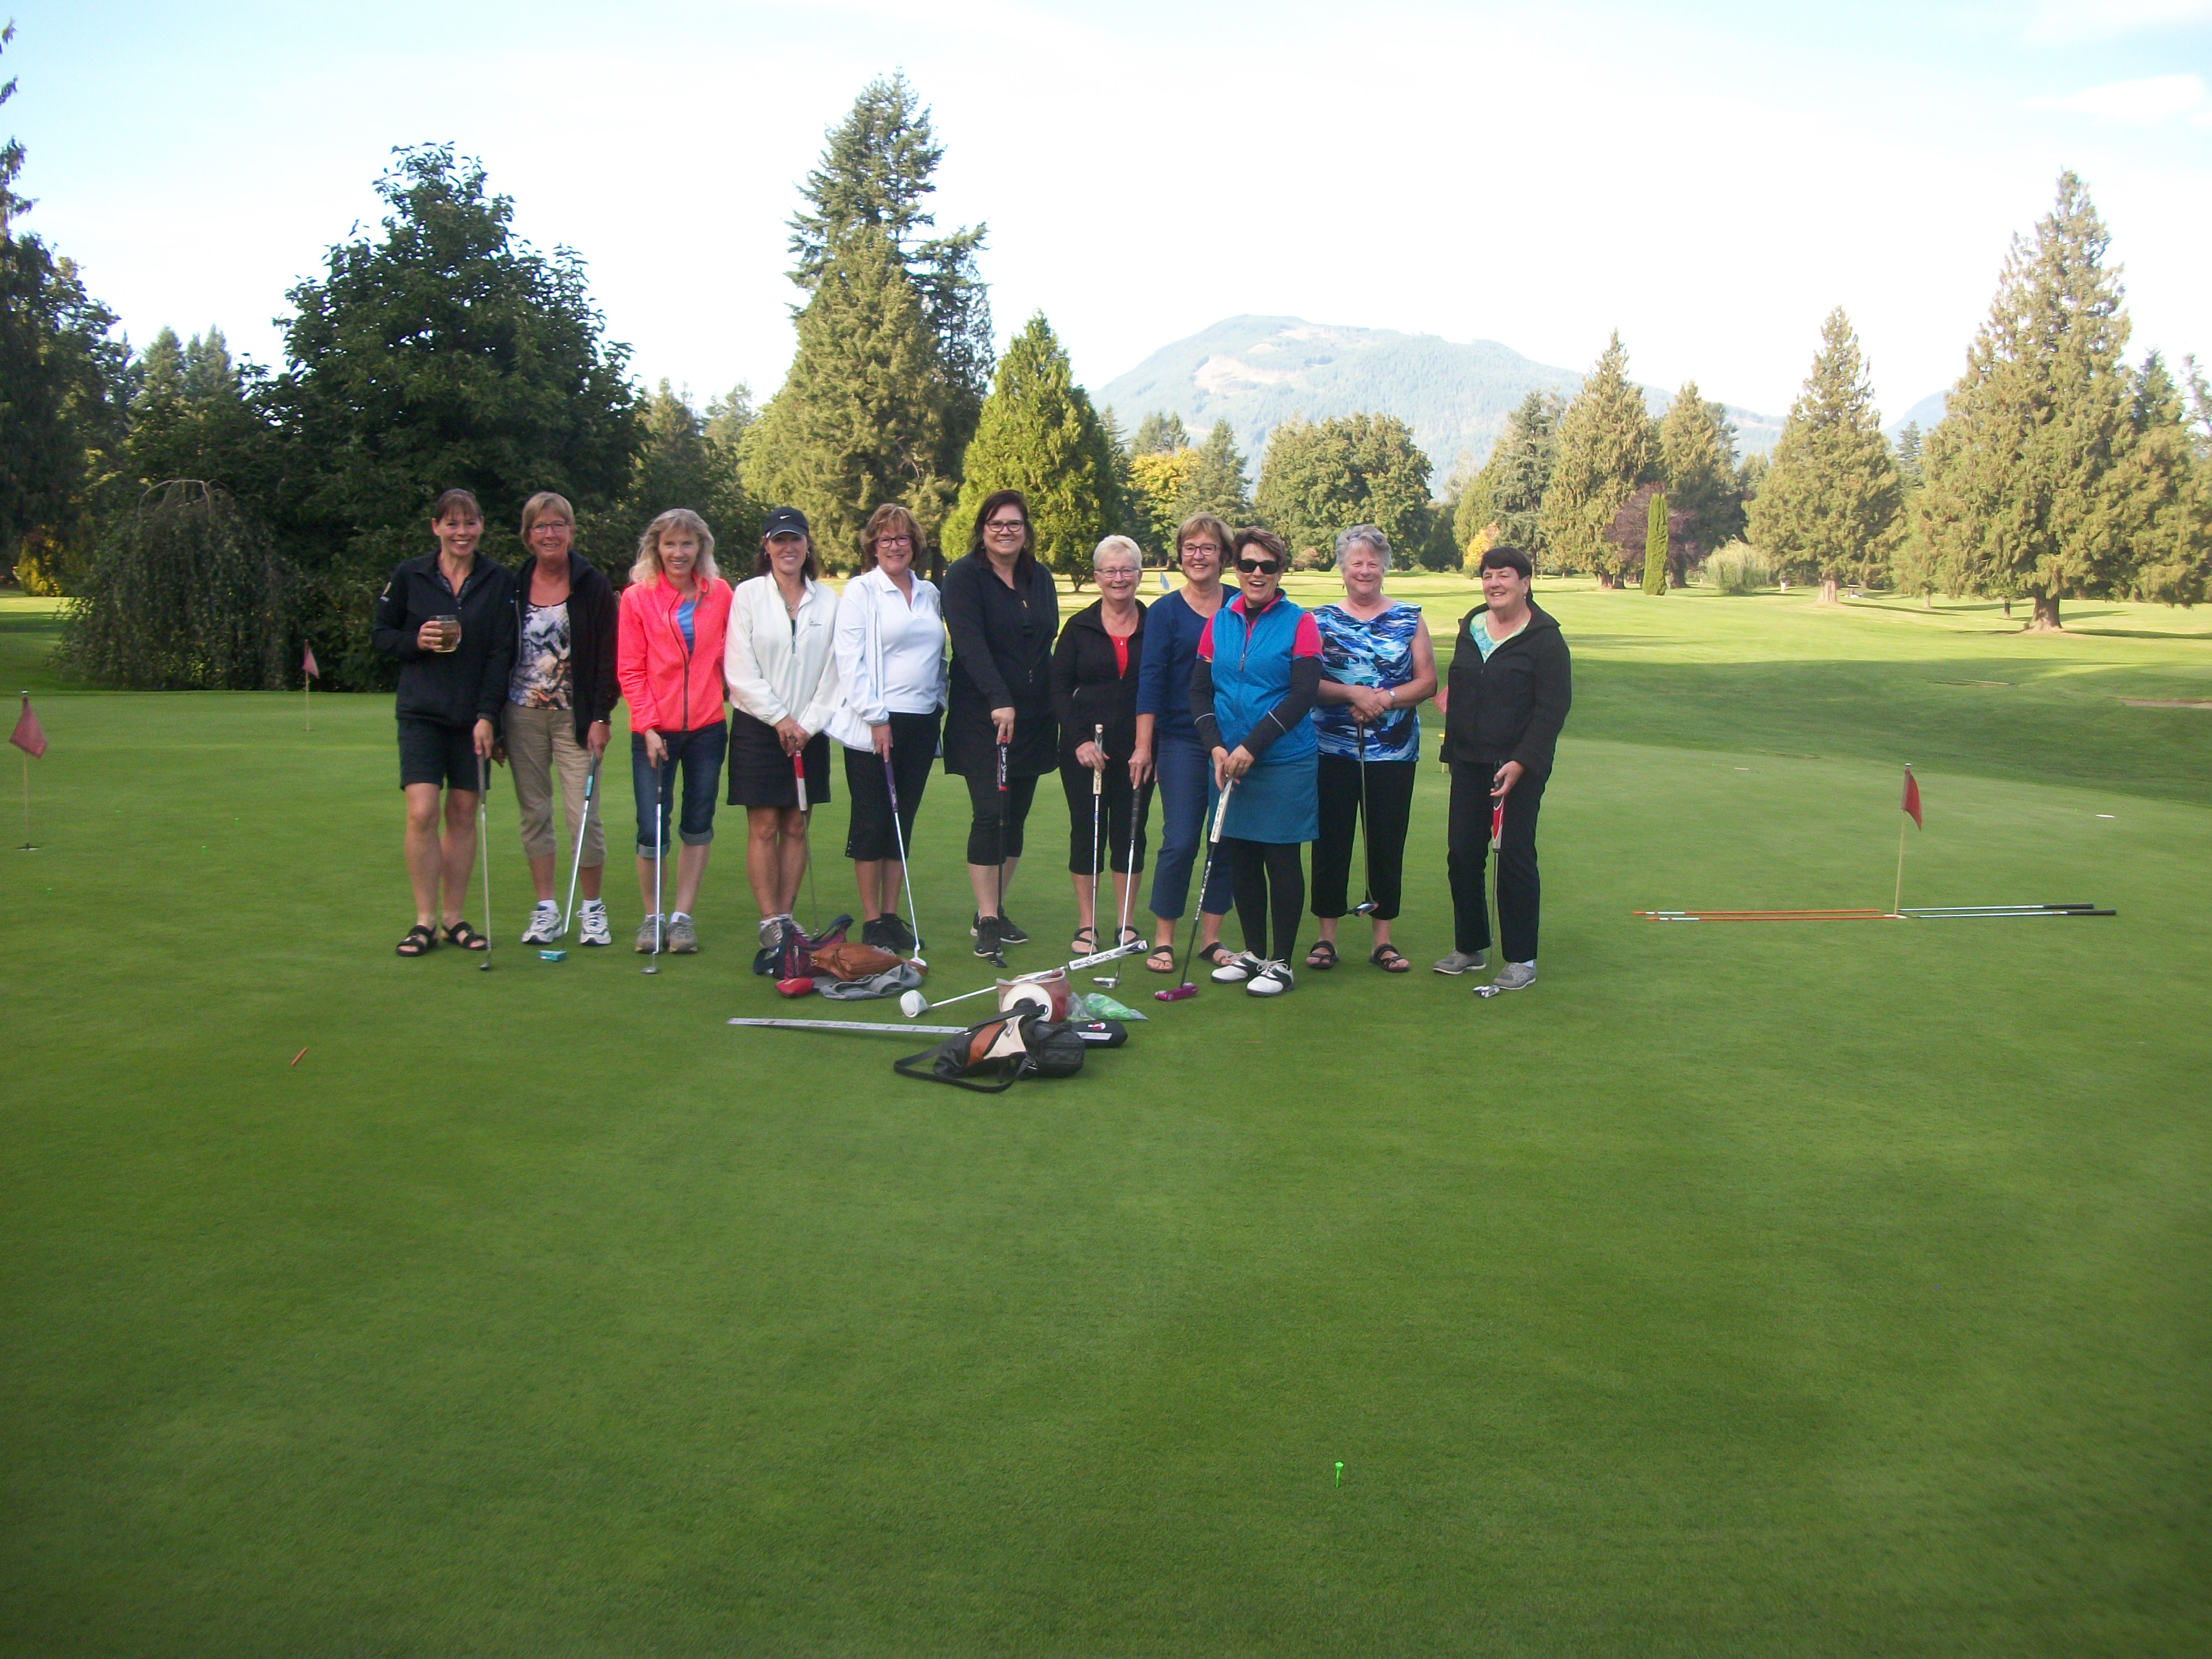 group of women golfing